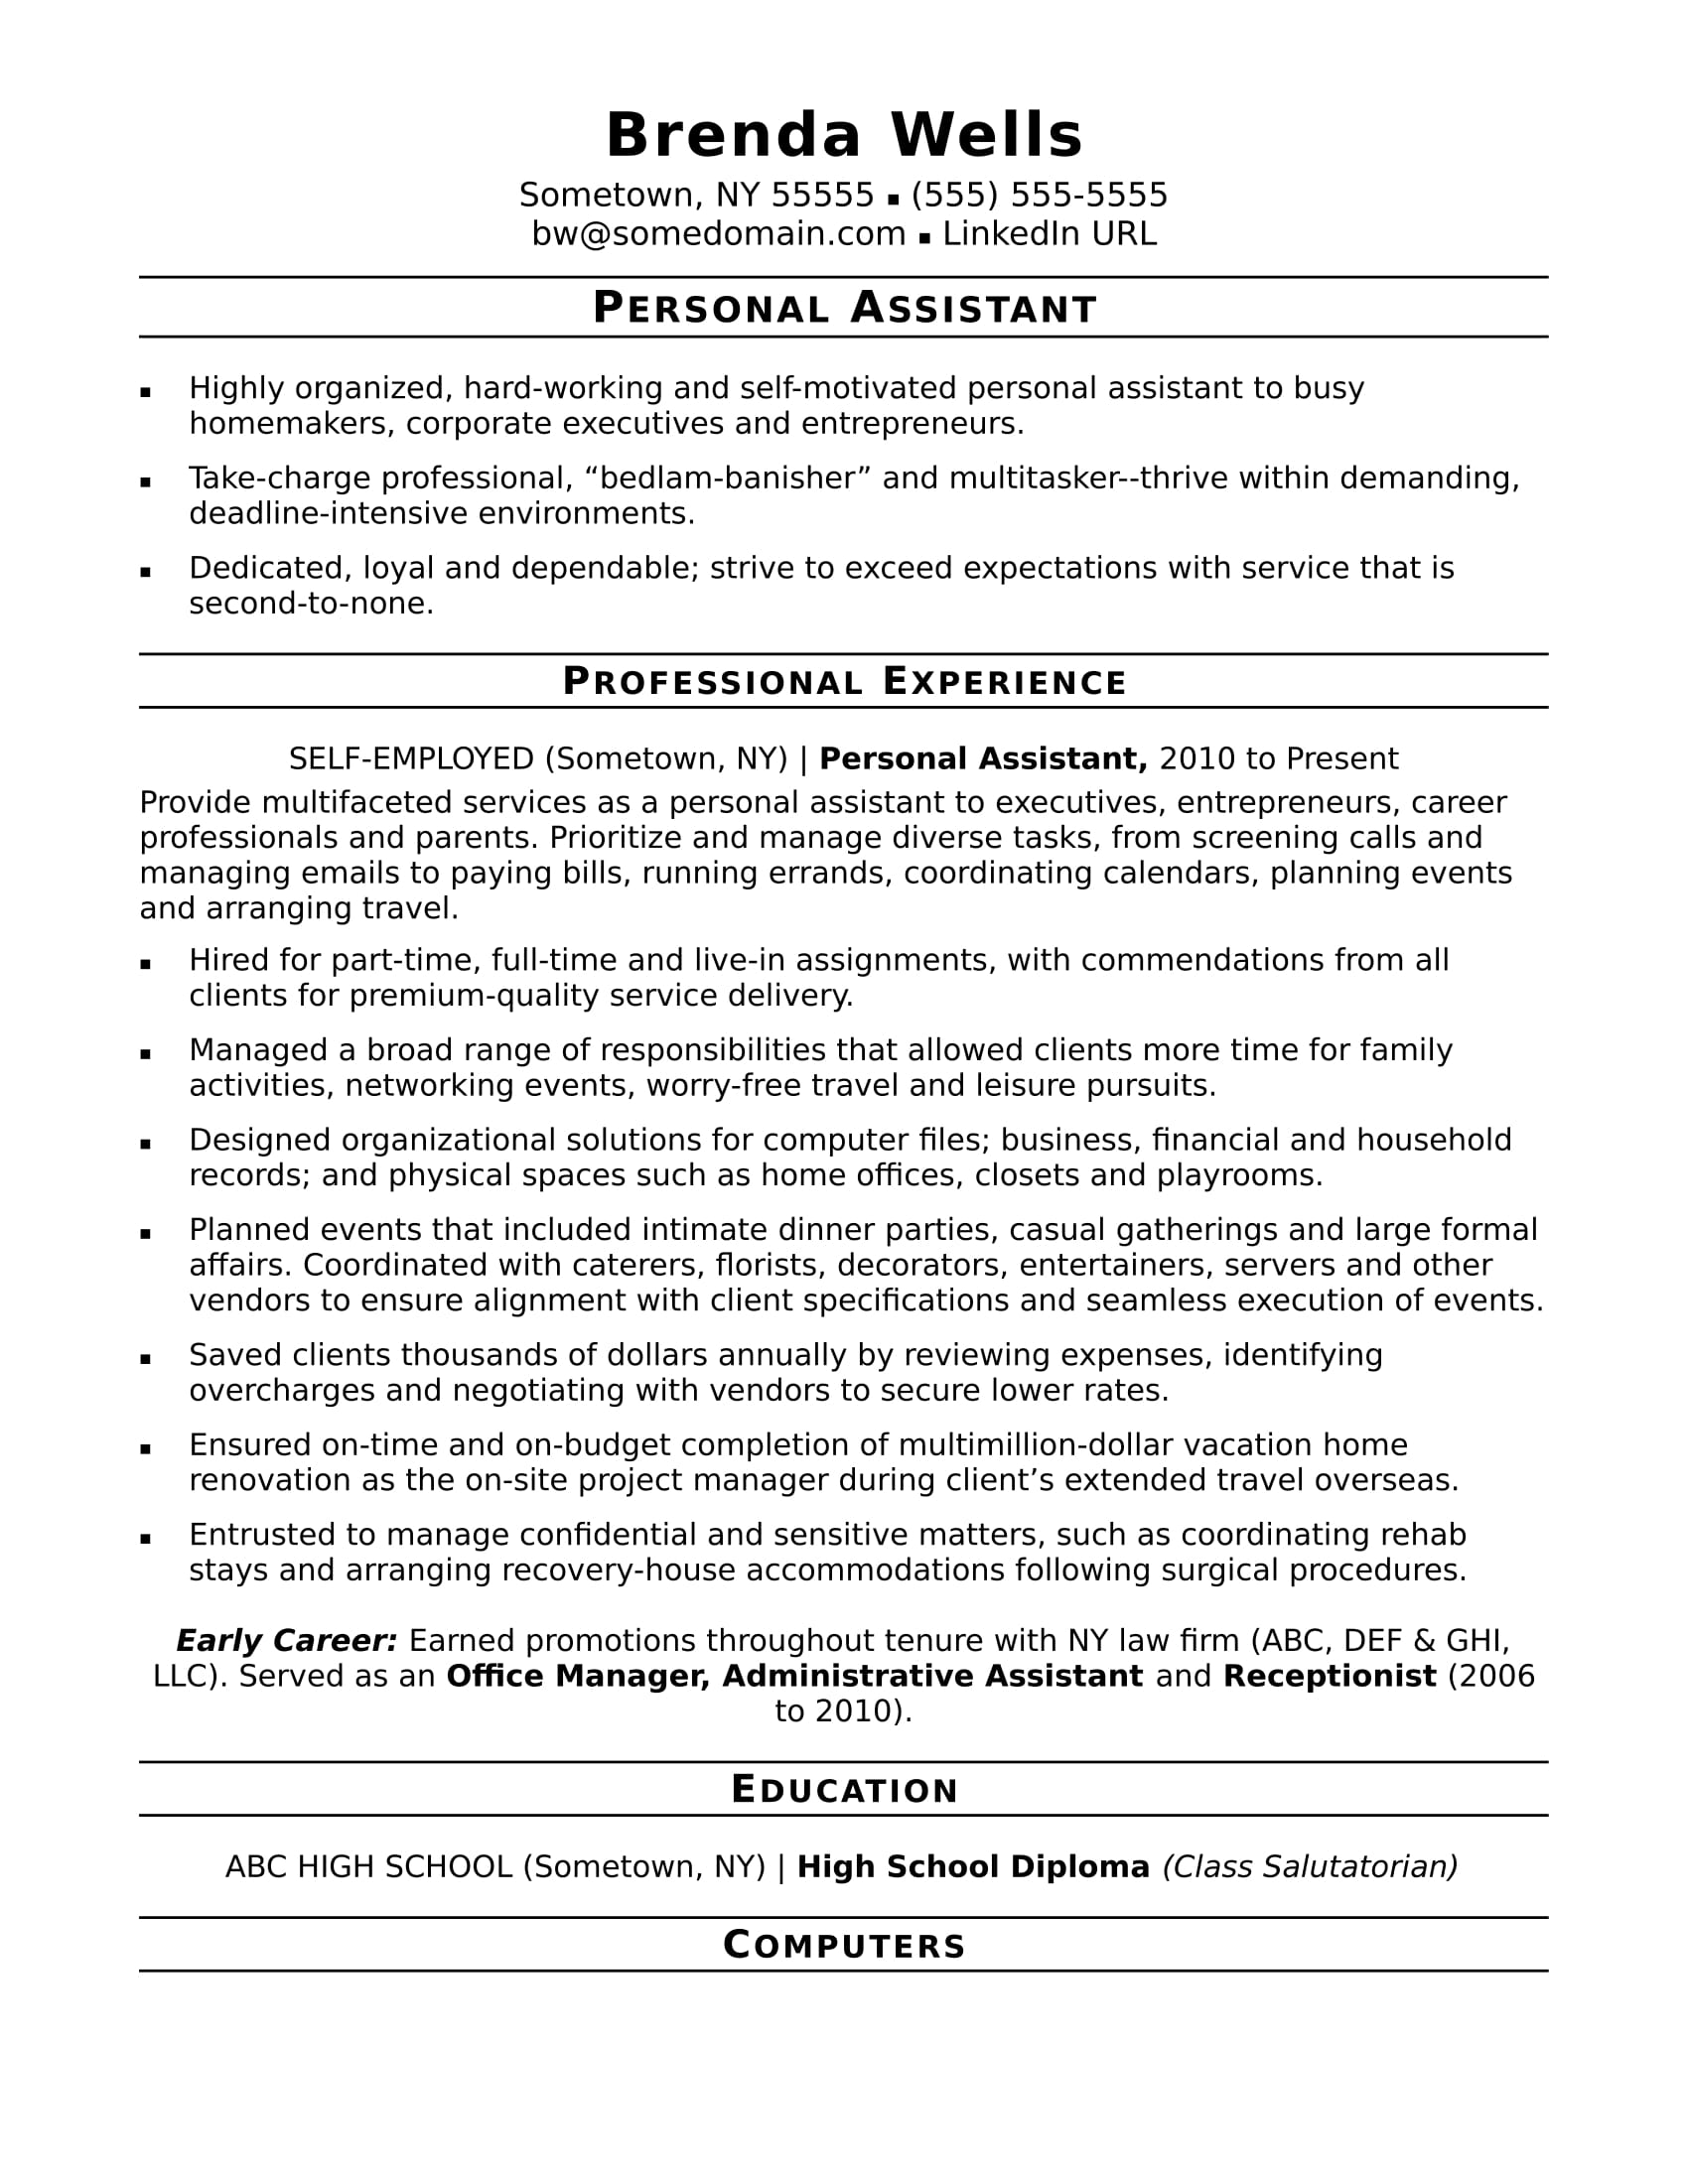 Personal Assistant Resume Sample Monster